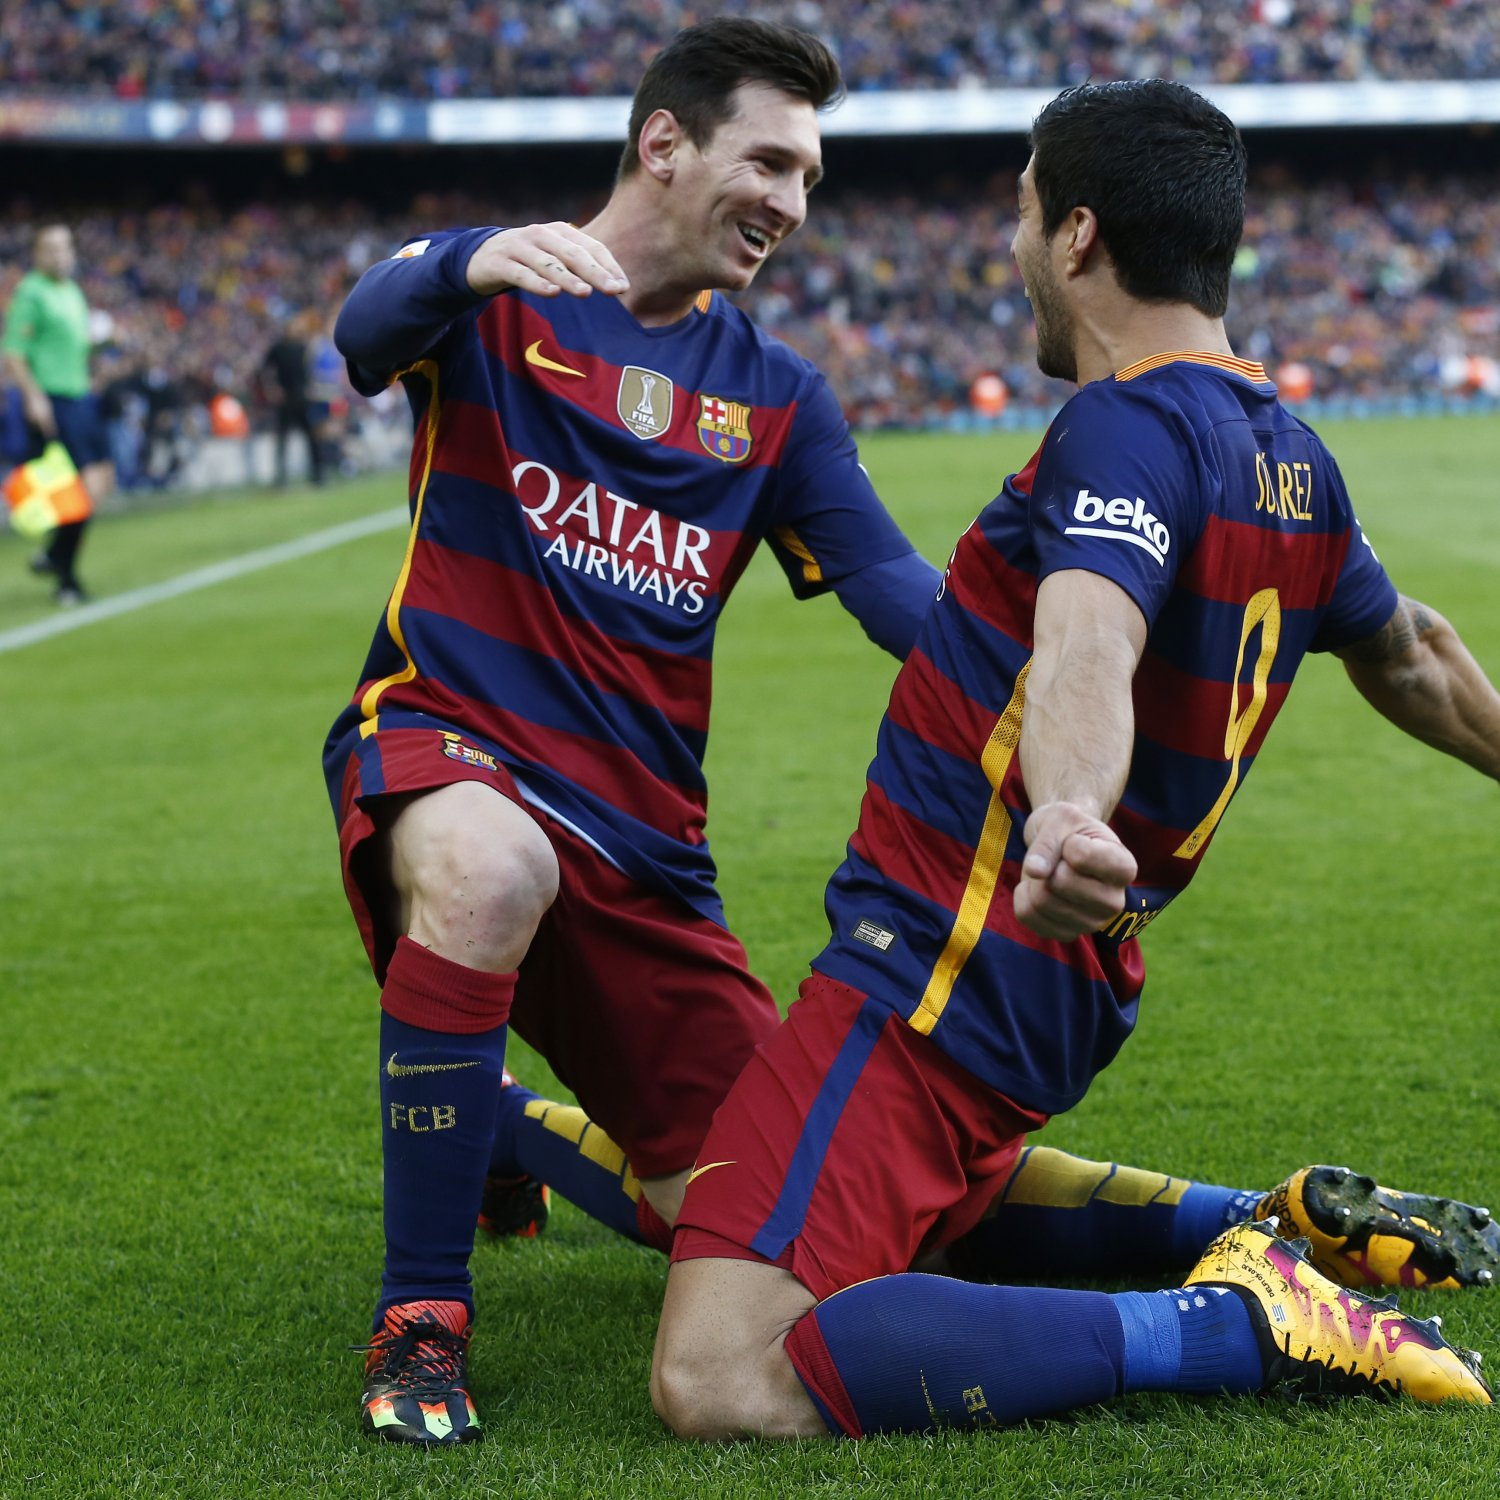 La liga table 2016 latest standings following saturday 39 s week 22 results bleacher report - La liga latest results and table ...